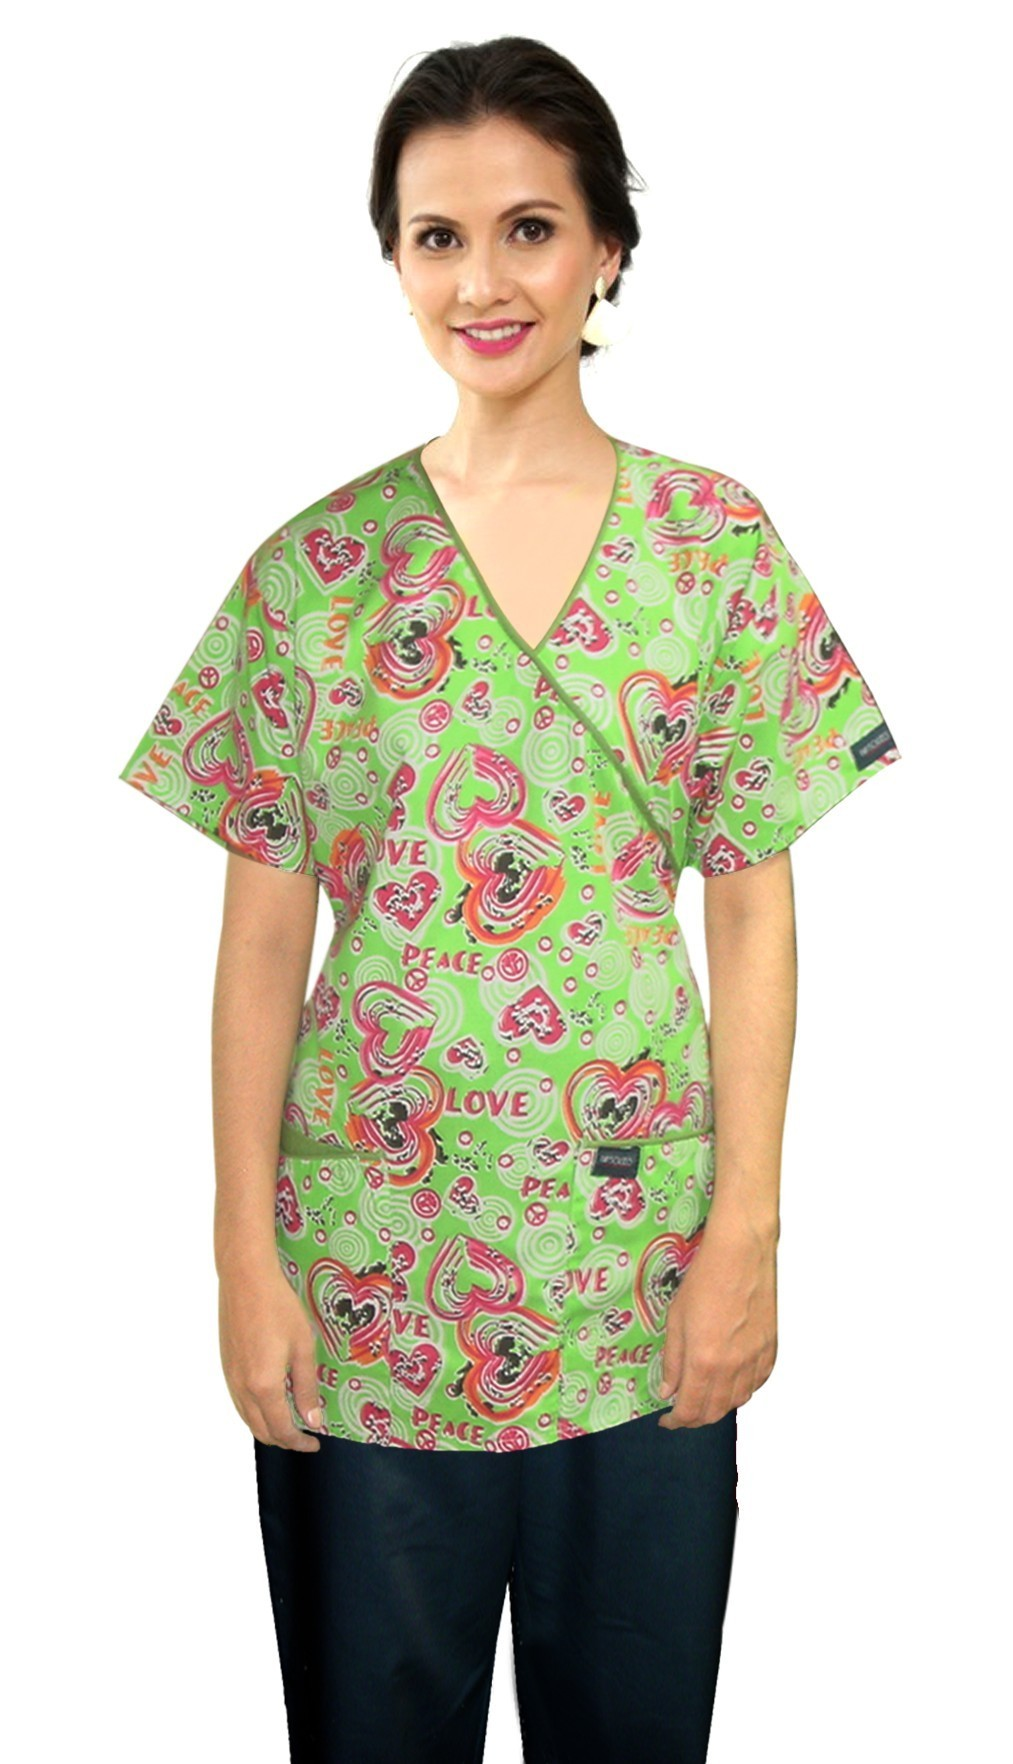 Top mock wrap 3 pocket half sleeve in love peace green print with parrot green piping